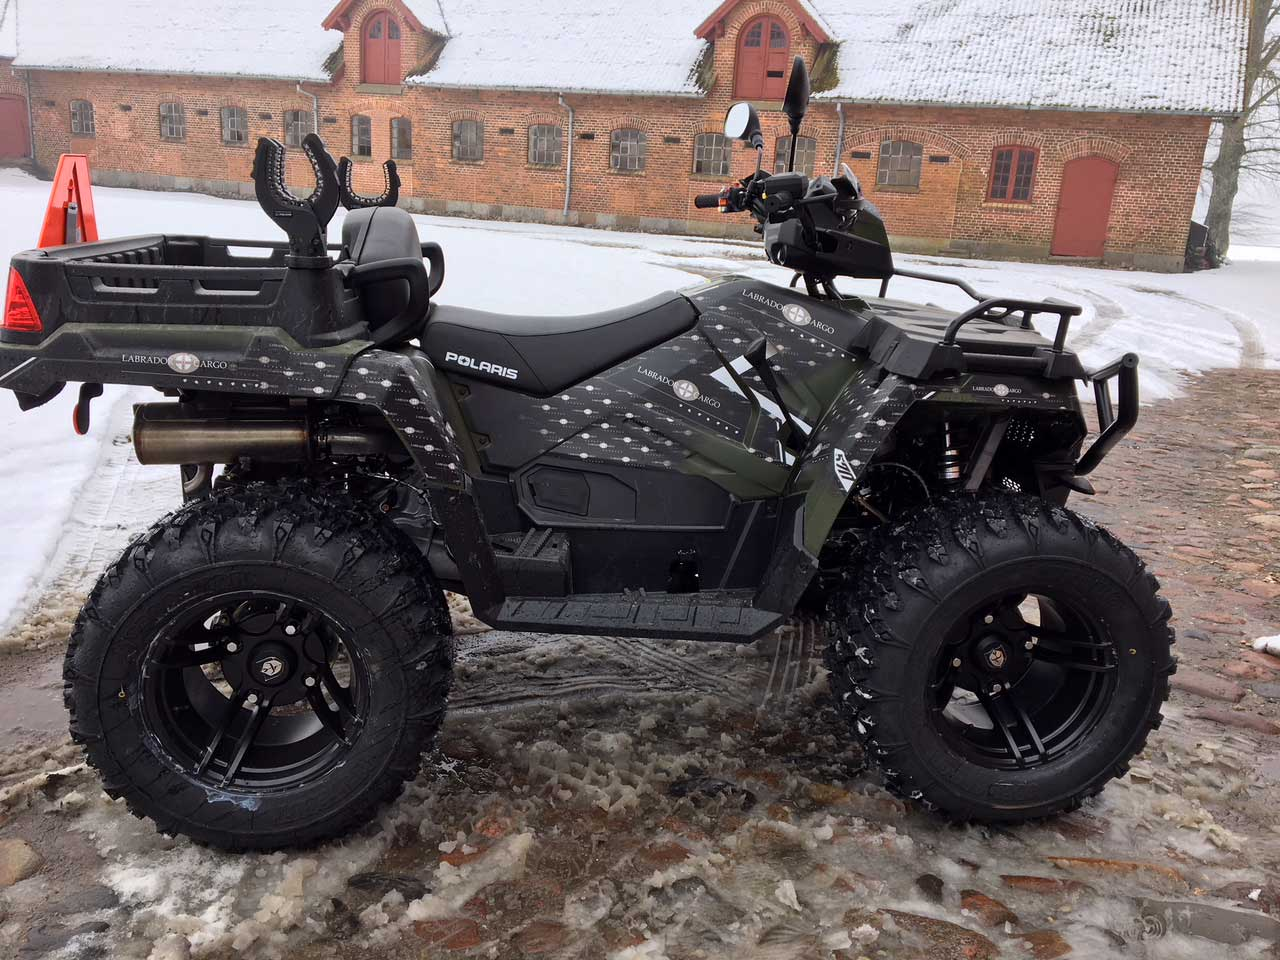 Special designet Grafik kit på Polaris ATV Sportsman xp 1000